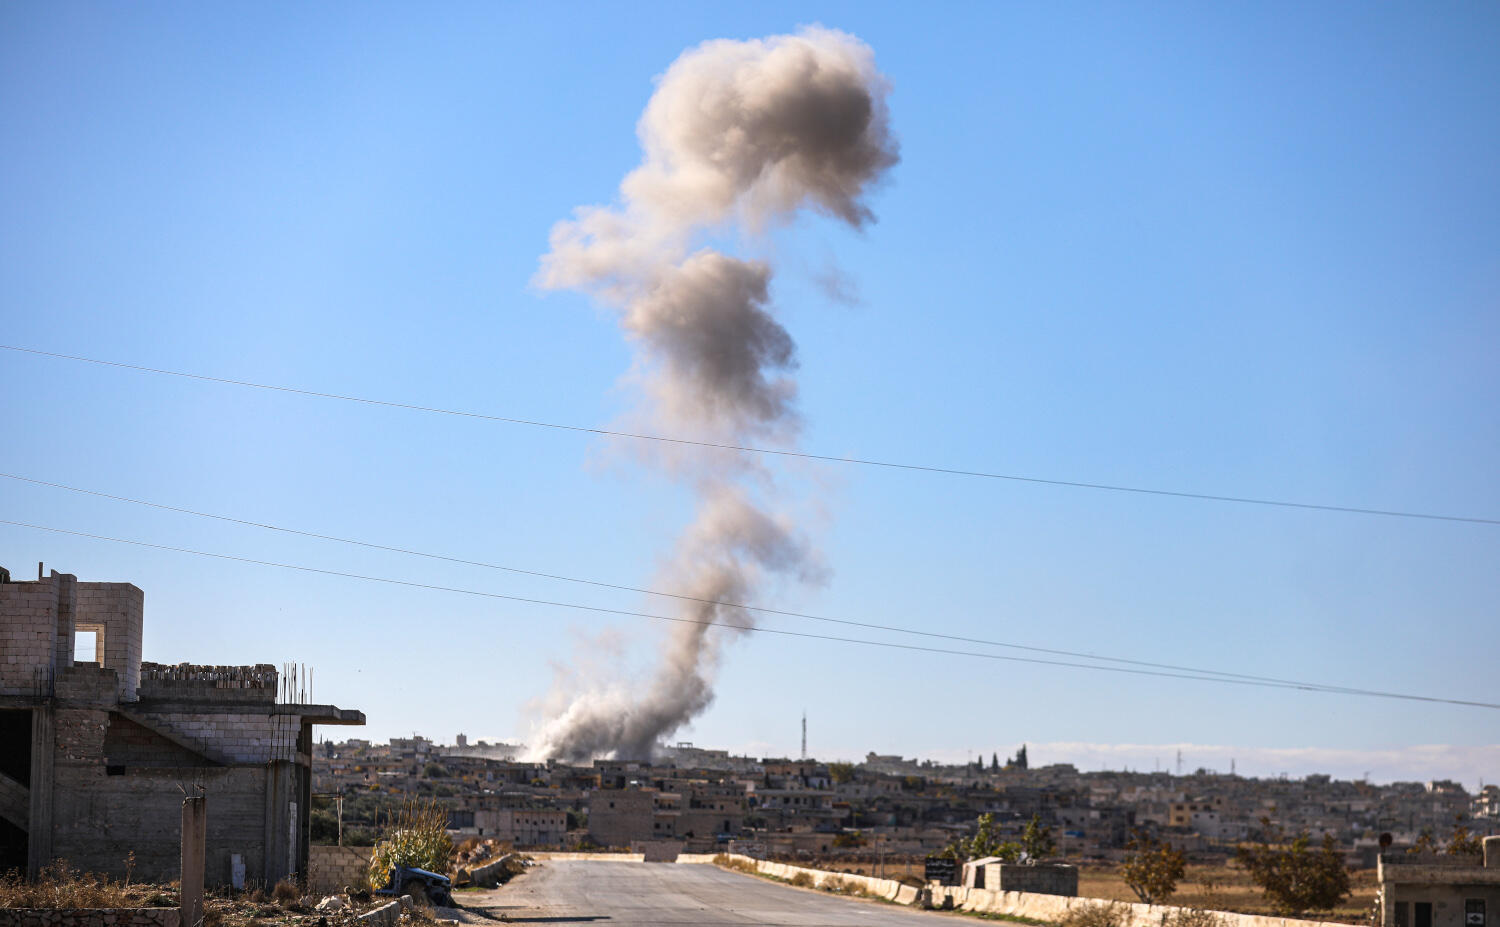 Russian planes launched more than 70 air raids on Idlib in Syria on 5 December.